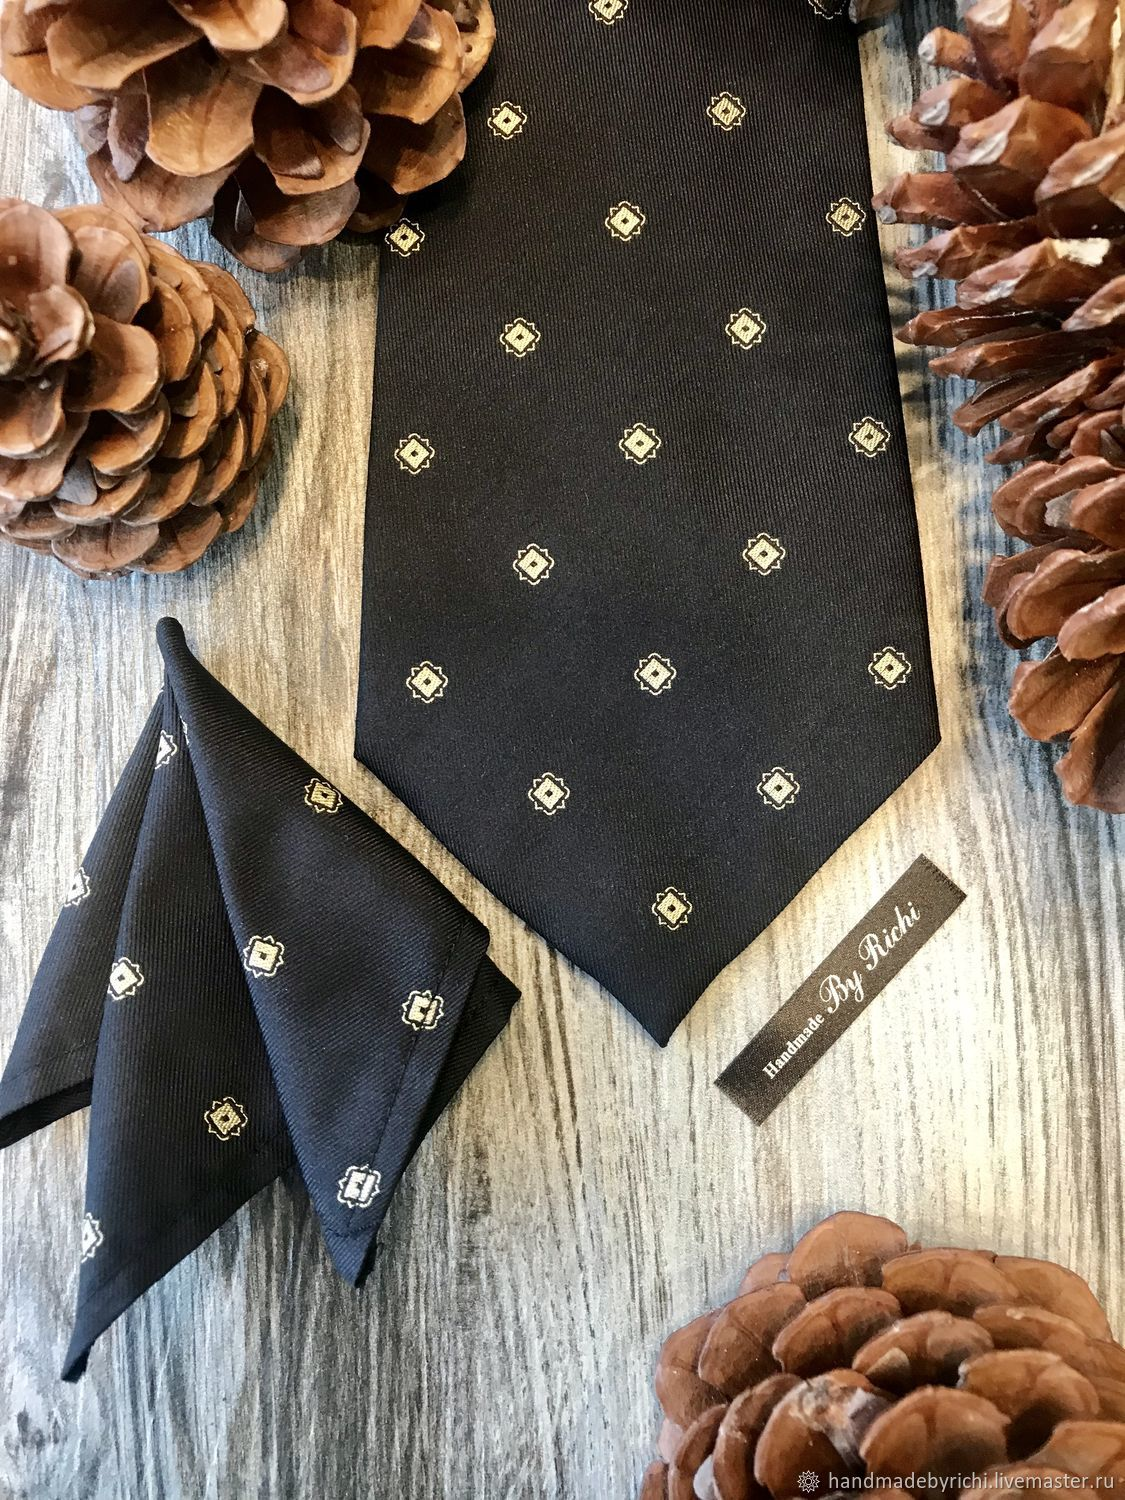 Classic tie handkerchief in the breast pocket of a jacket or shirt